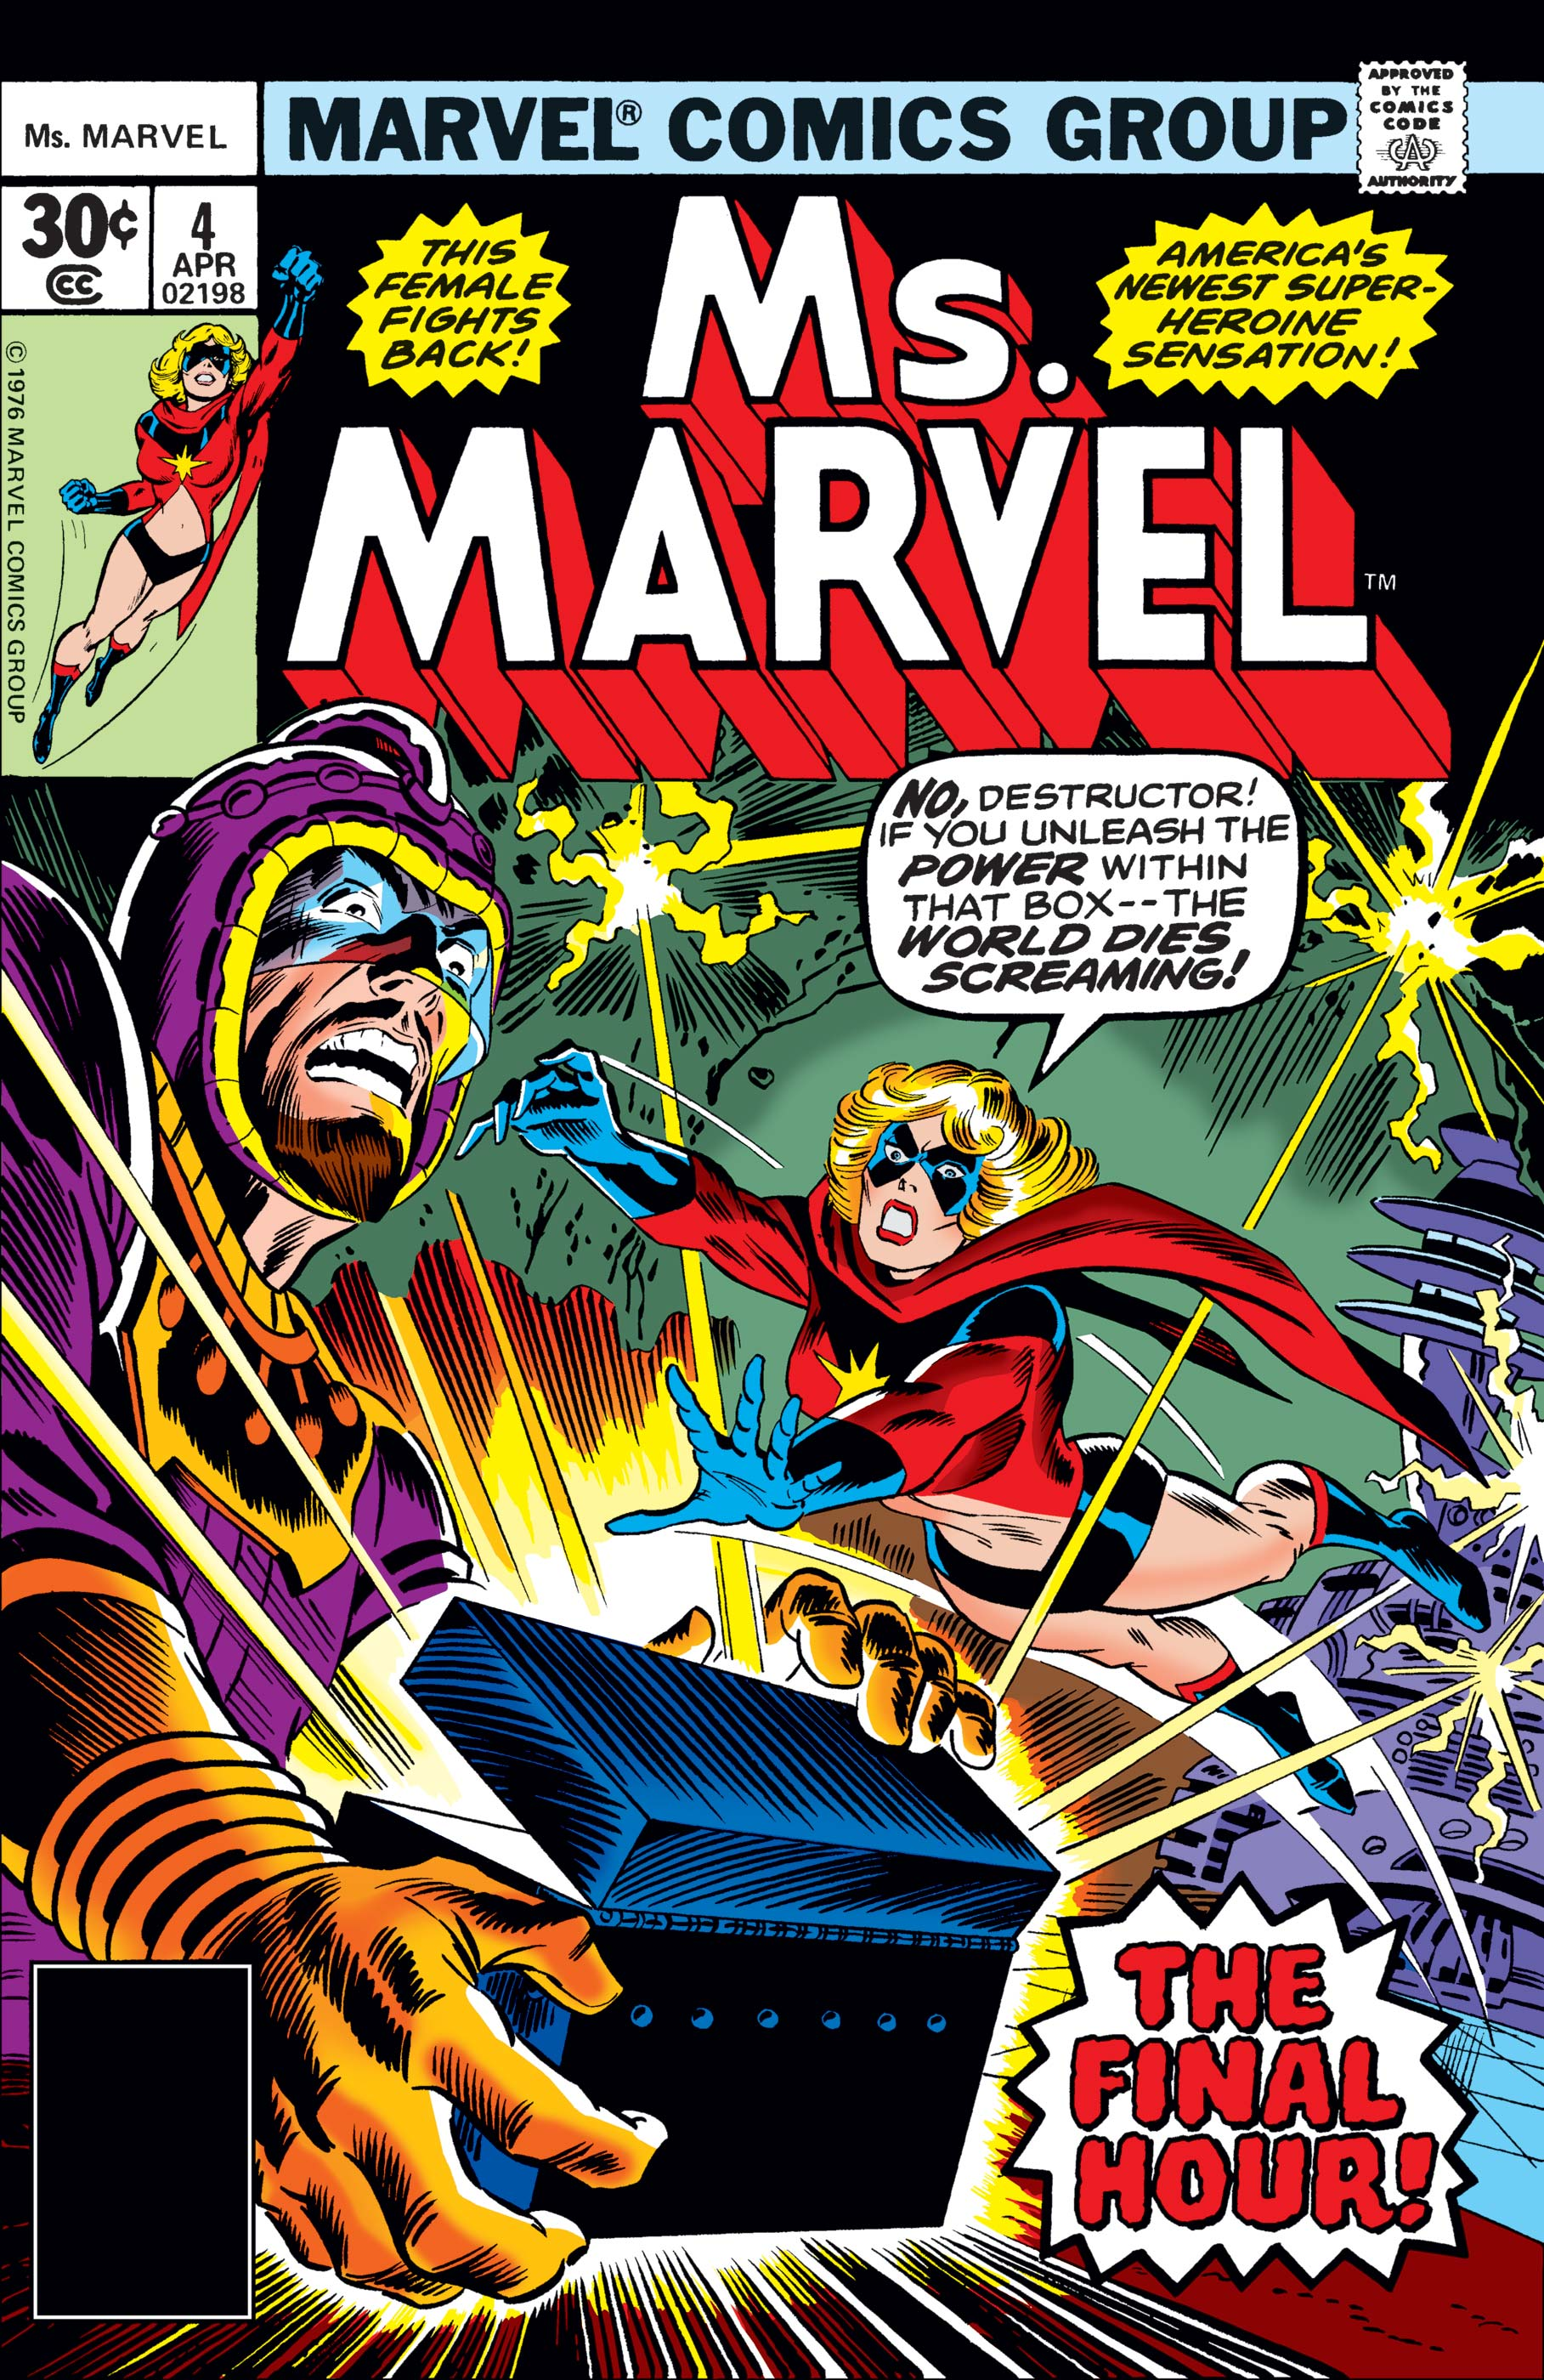 Ms. Marvel (1977) #4